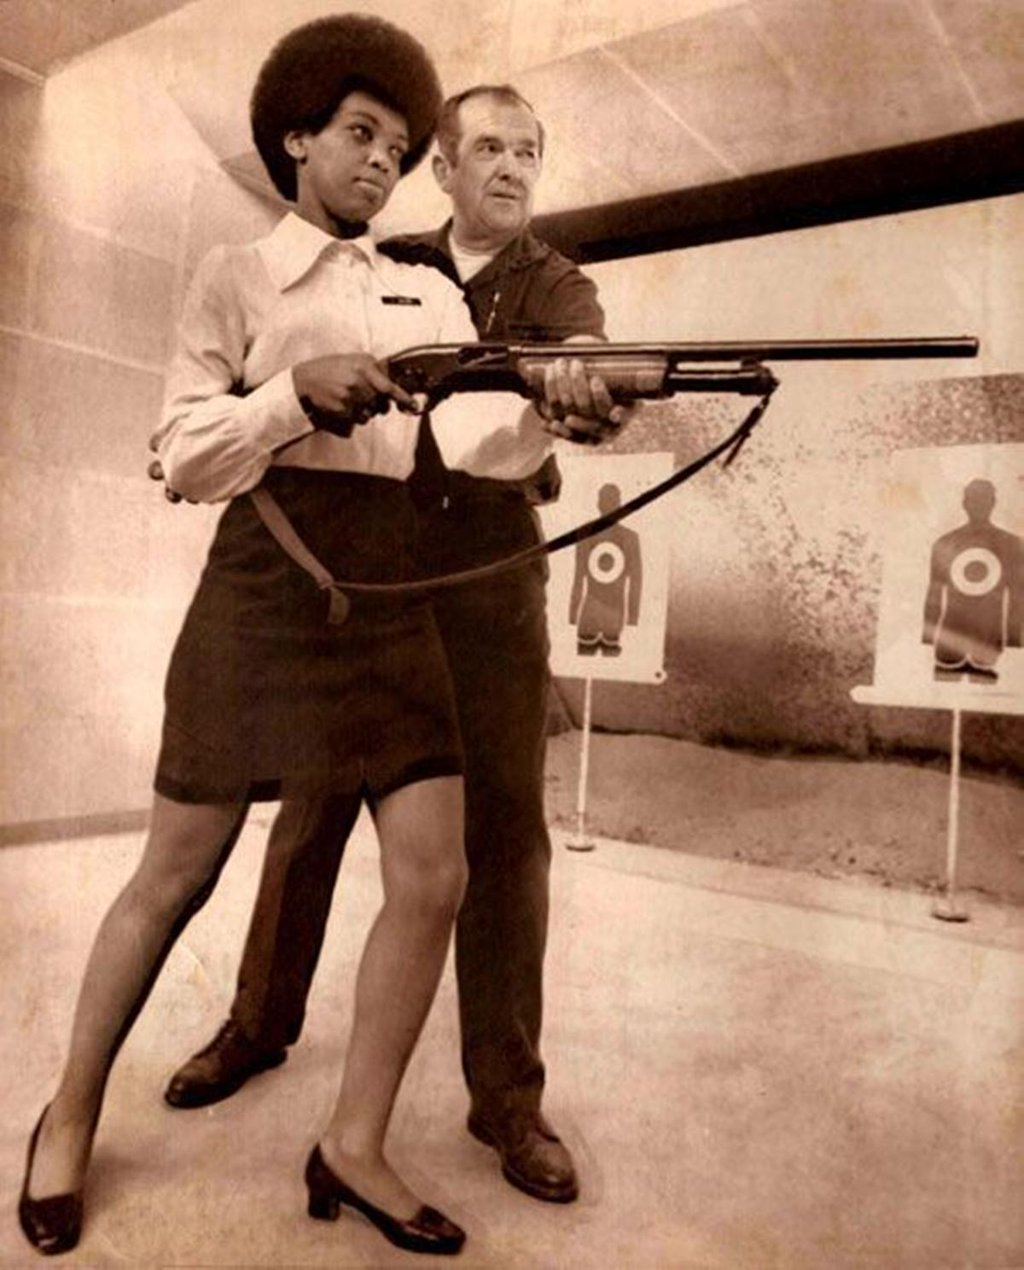 9-saundra-brown-the-first-black-woman-on-the-oakland-police-force-gets-instructions-on-how-to-shoot-a-shotgun-1970